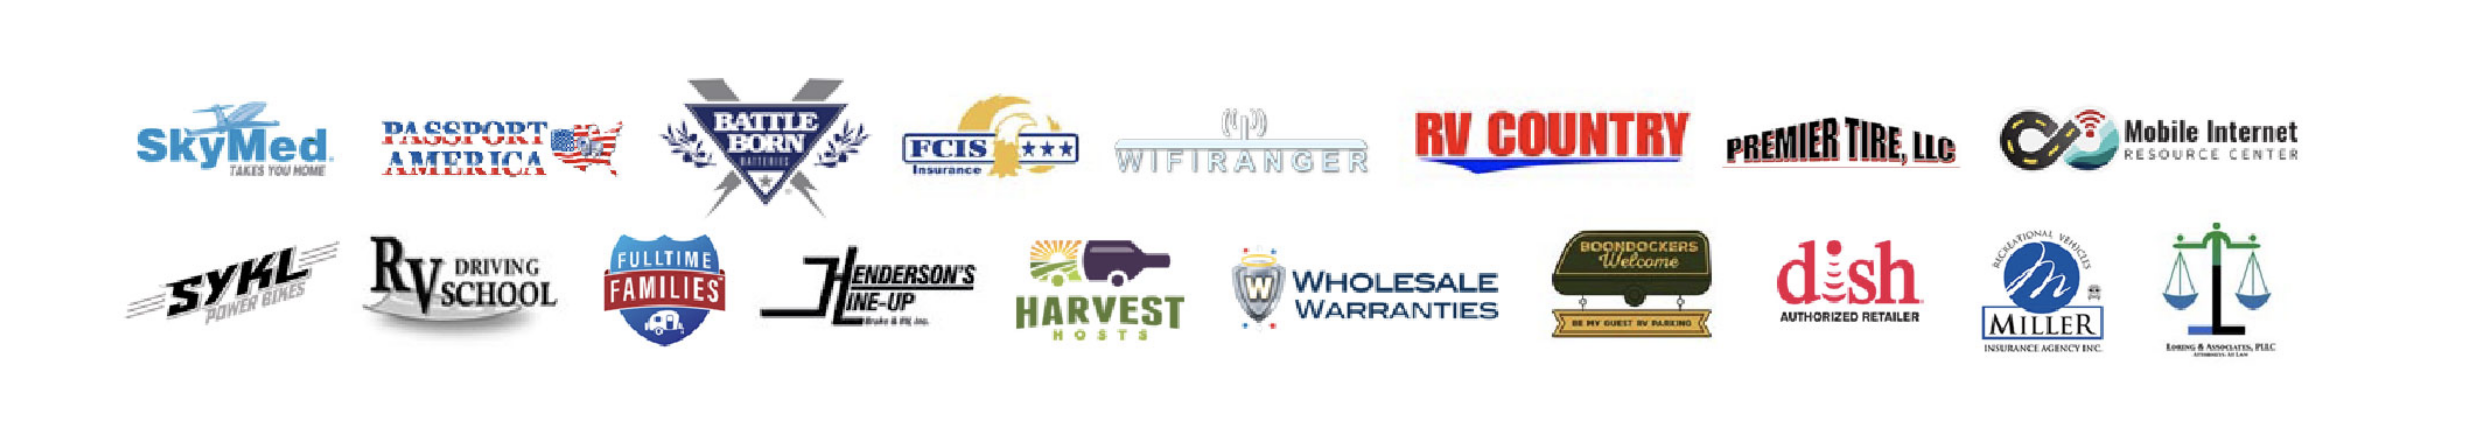 Variety of logos of companies offering Escapees members discounts, to help members save the most money with an Escapees RV Club membership